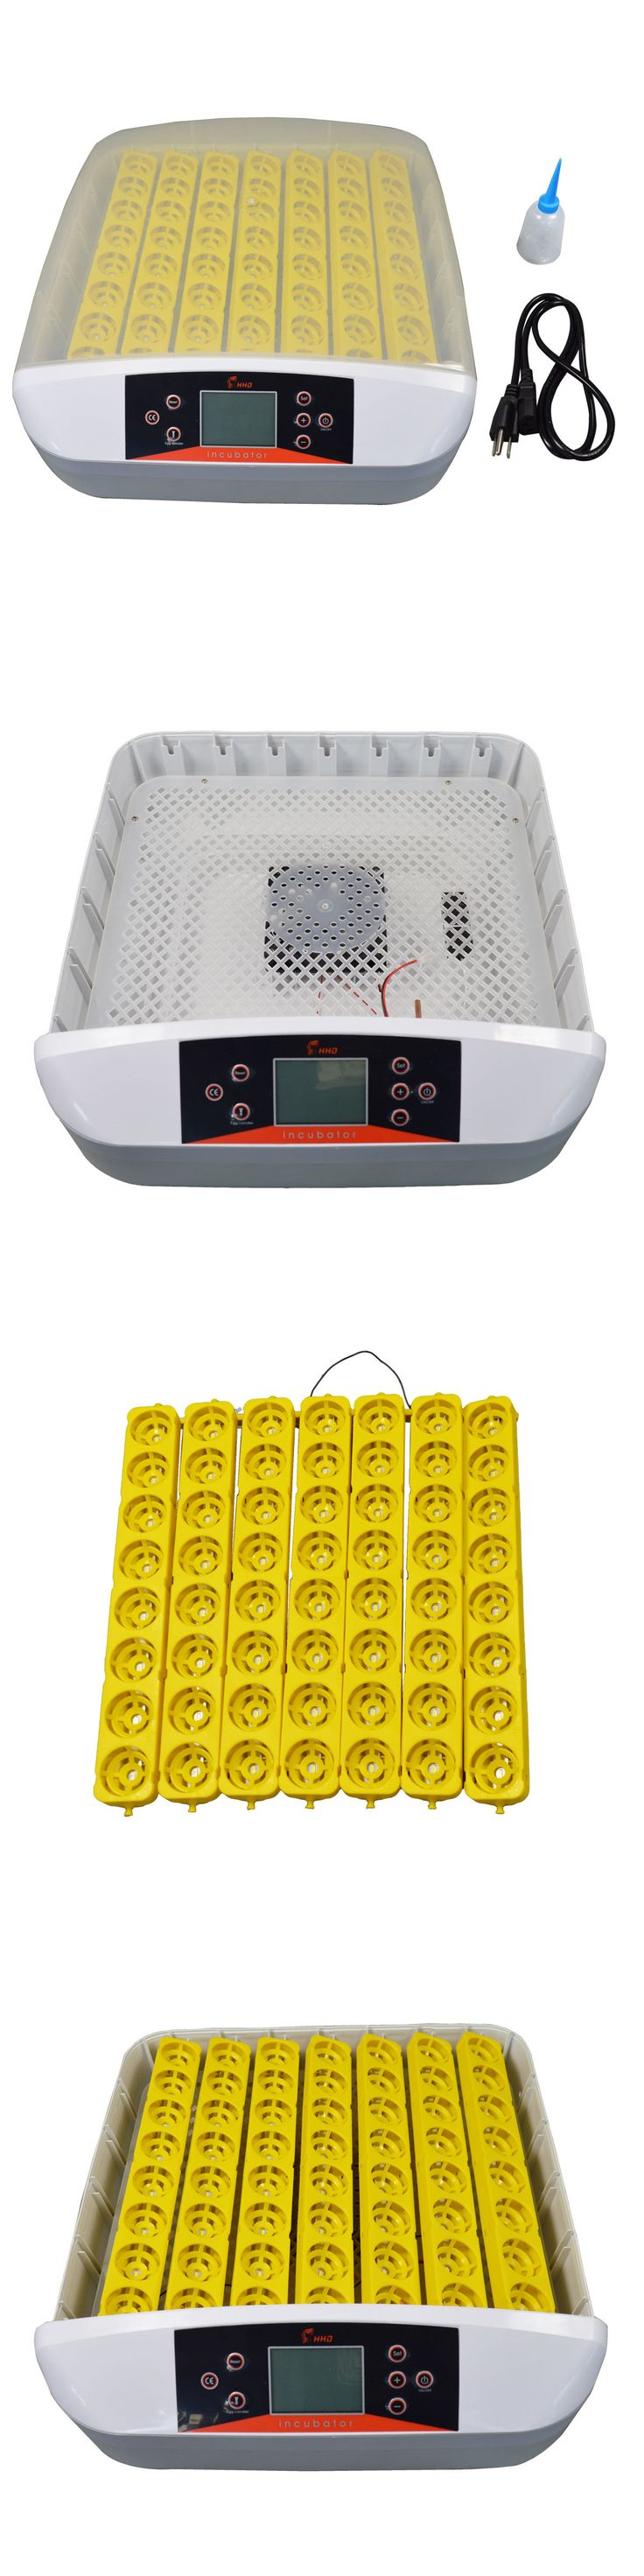 Incubators 46292: Egg Incubator Hatcher Digital Auto-Turning With Built-In Candler 56 Eggs 110V BUY IT NOW ONLY: $170.05